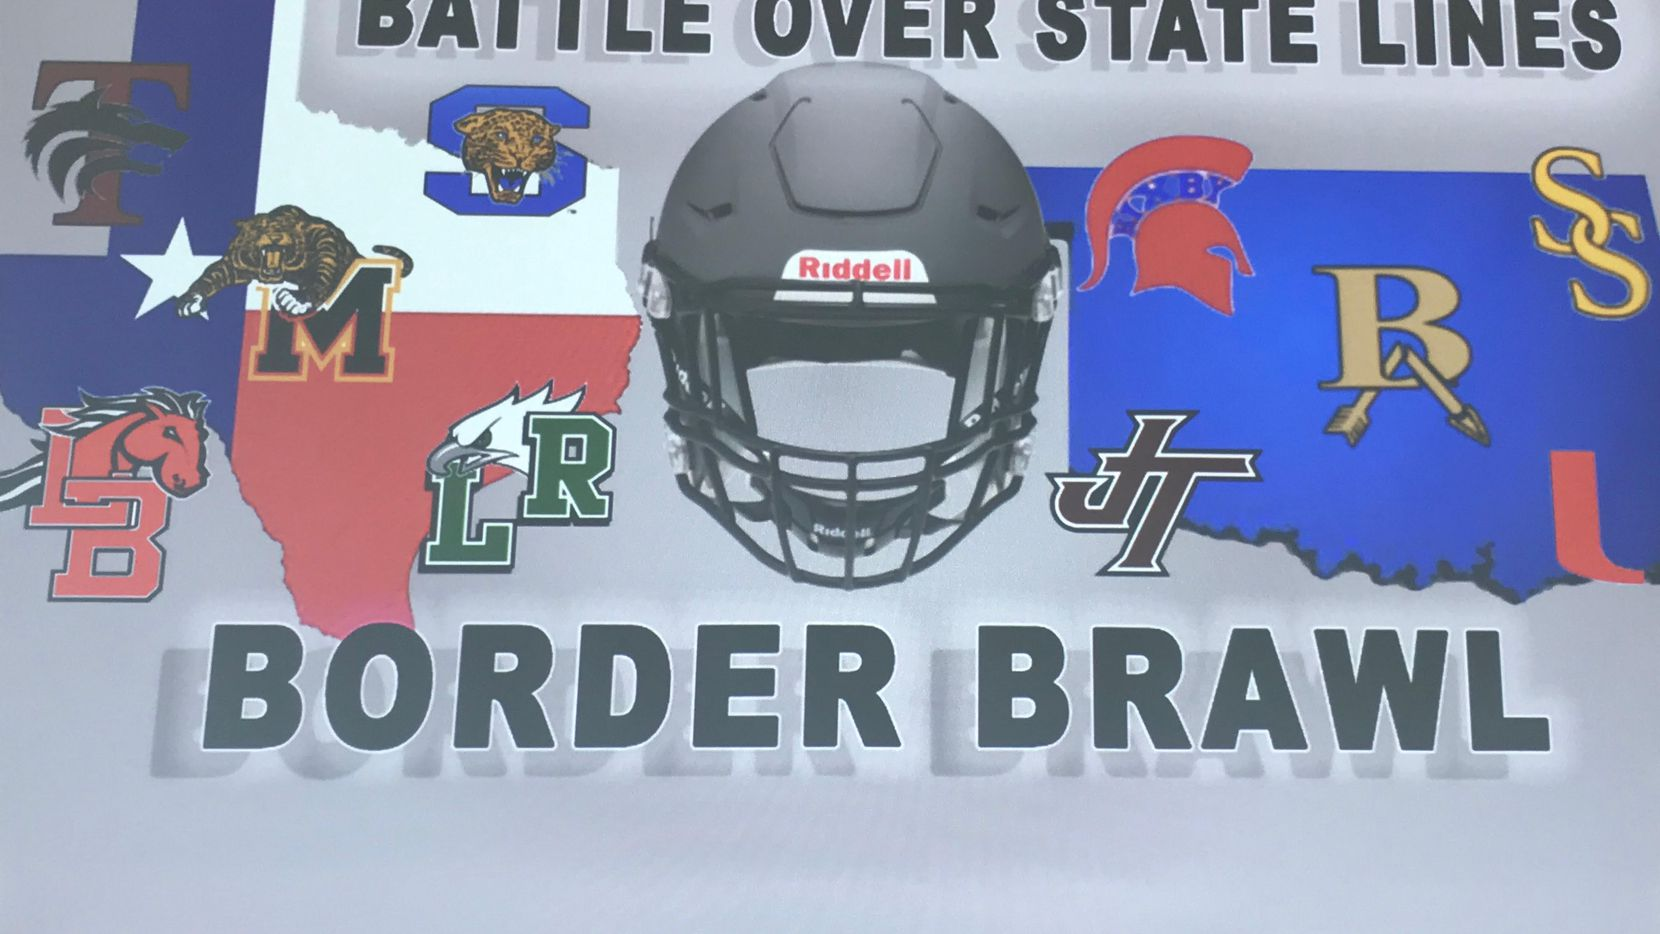 The Border Brawl will feature Mansfield ISD schools playing opponents from Oklahoma on Aug. 29-31 in Mansfield. (Photo by Greg Riddle)